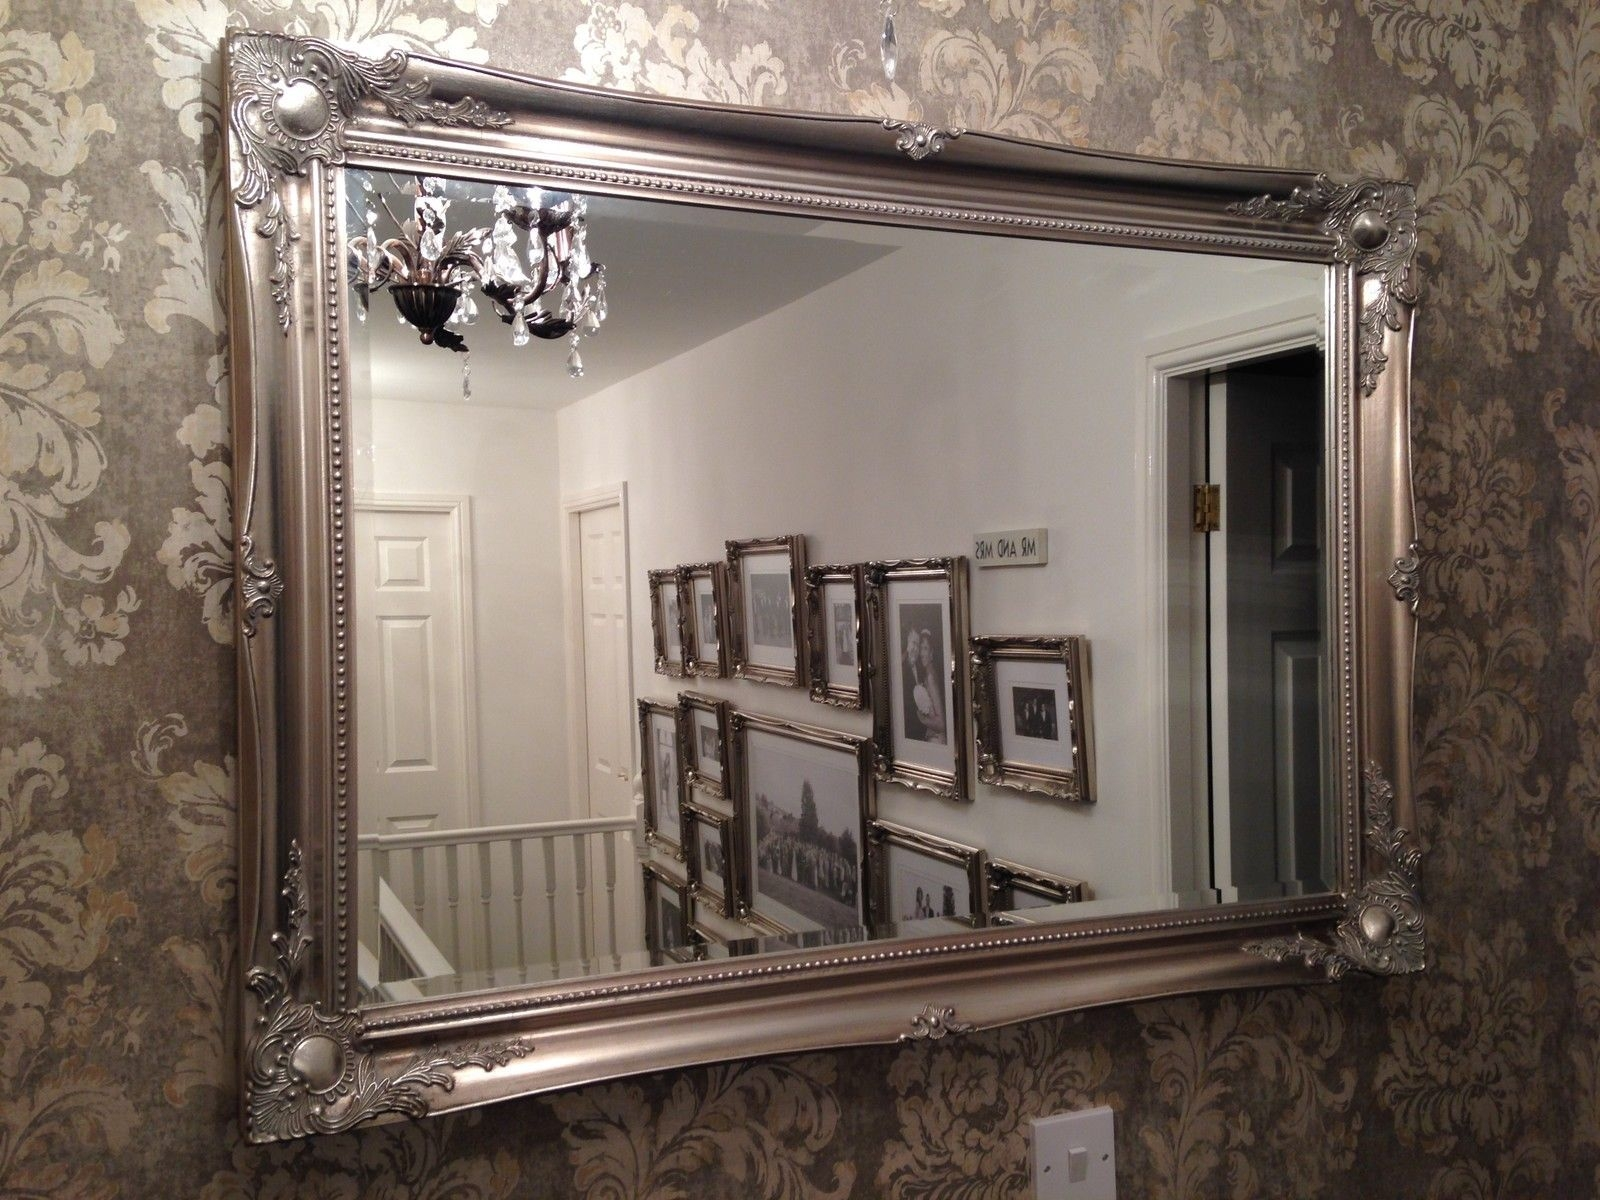 Large Antique Silver Shab Chic Ornate Decorative Over Mantle Intended For Large Antique Silver Mirror (Image 8 of 15)